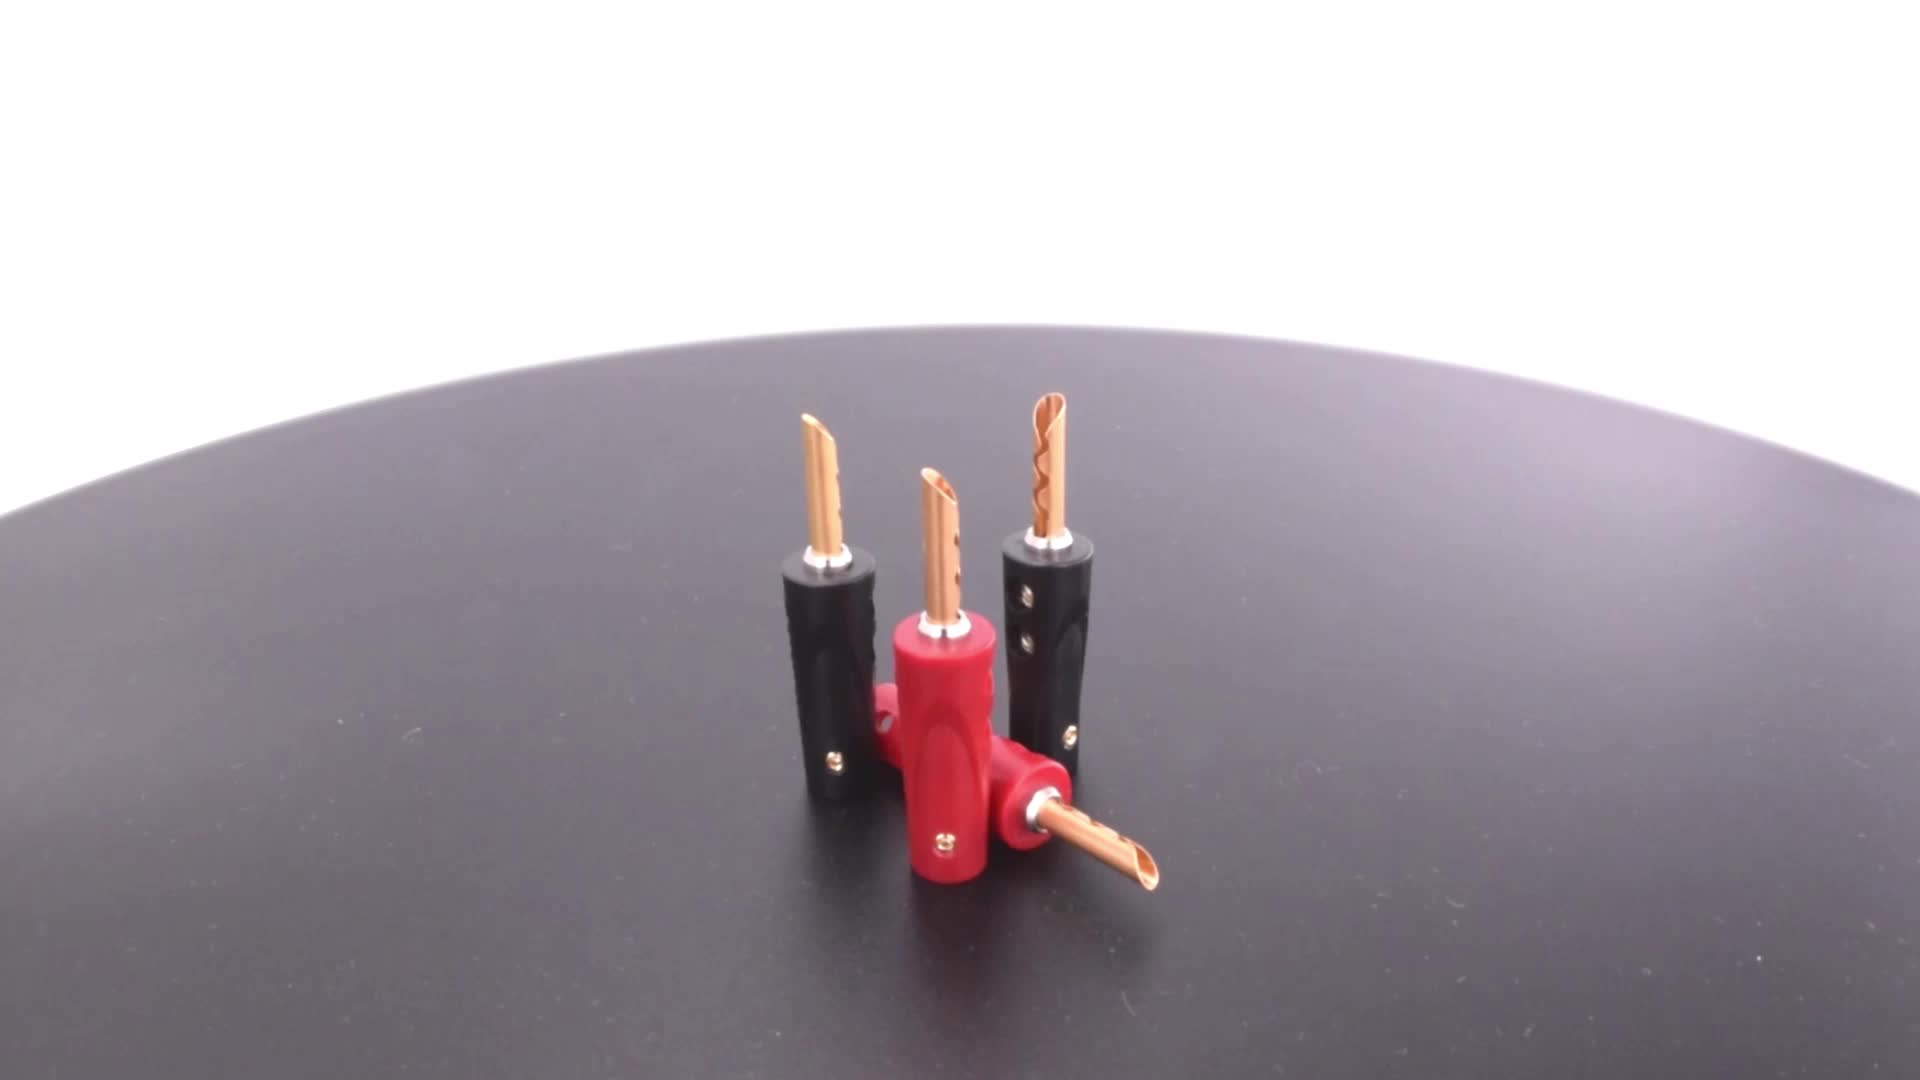 ABS molded shell brass and beryllium copper electroplated nickel-free gold body speaker connector Toothed banana plug